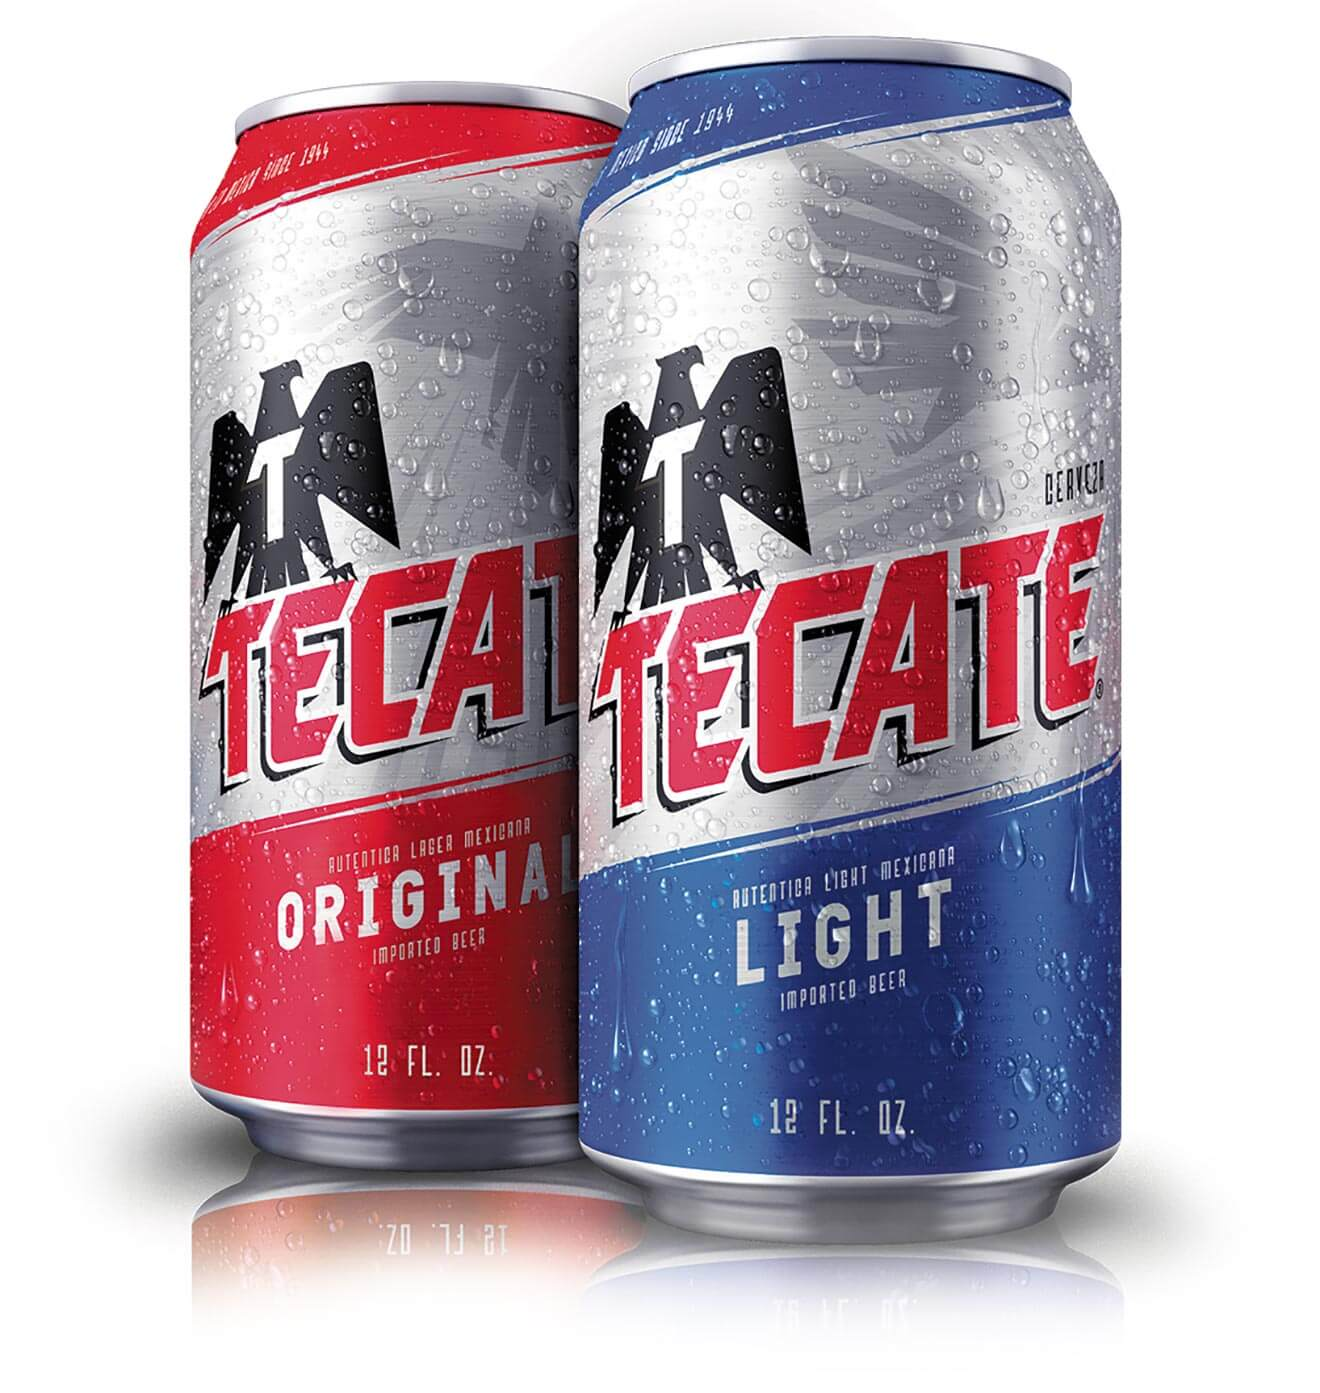 Tecate and Tecate Light cans